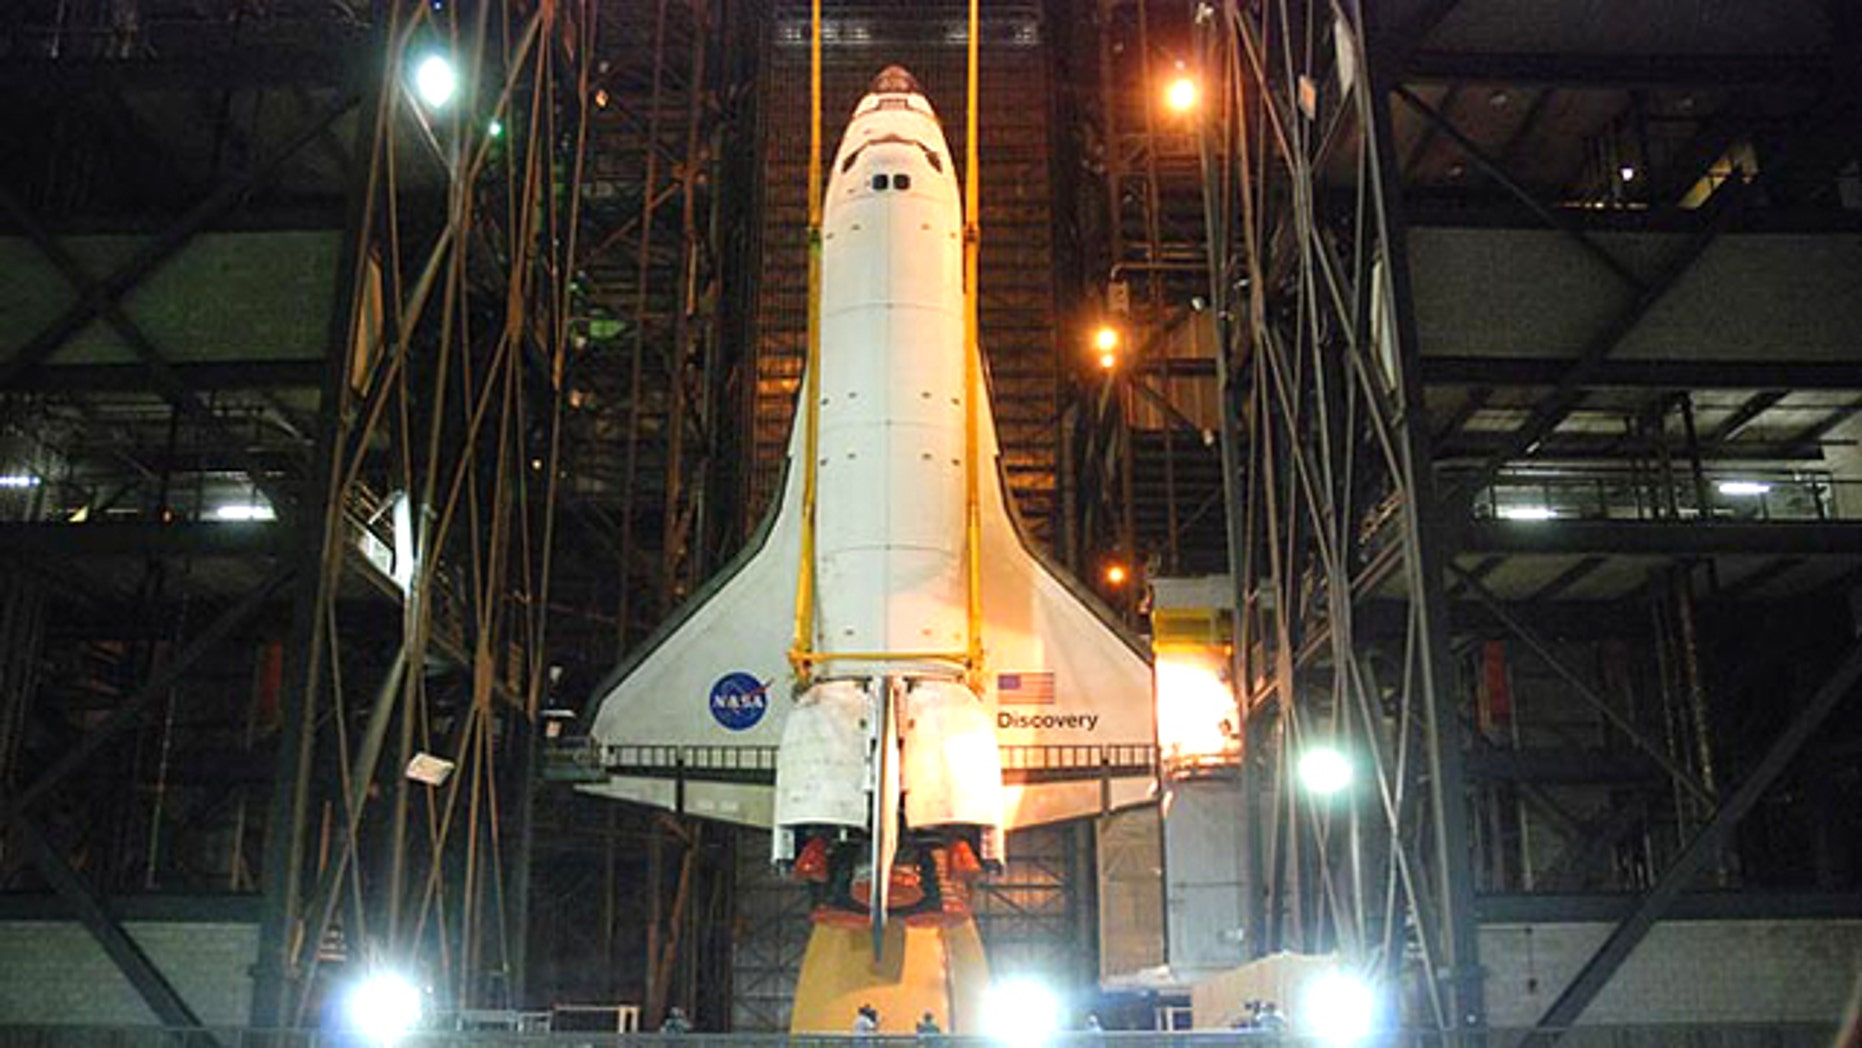 Space shuttle Discovery is hoisted into position to be attached to its external tank and solid rocket boosters for its final launch into space on the STS-133 mission to the International Space Station.